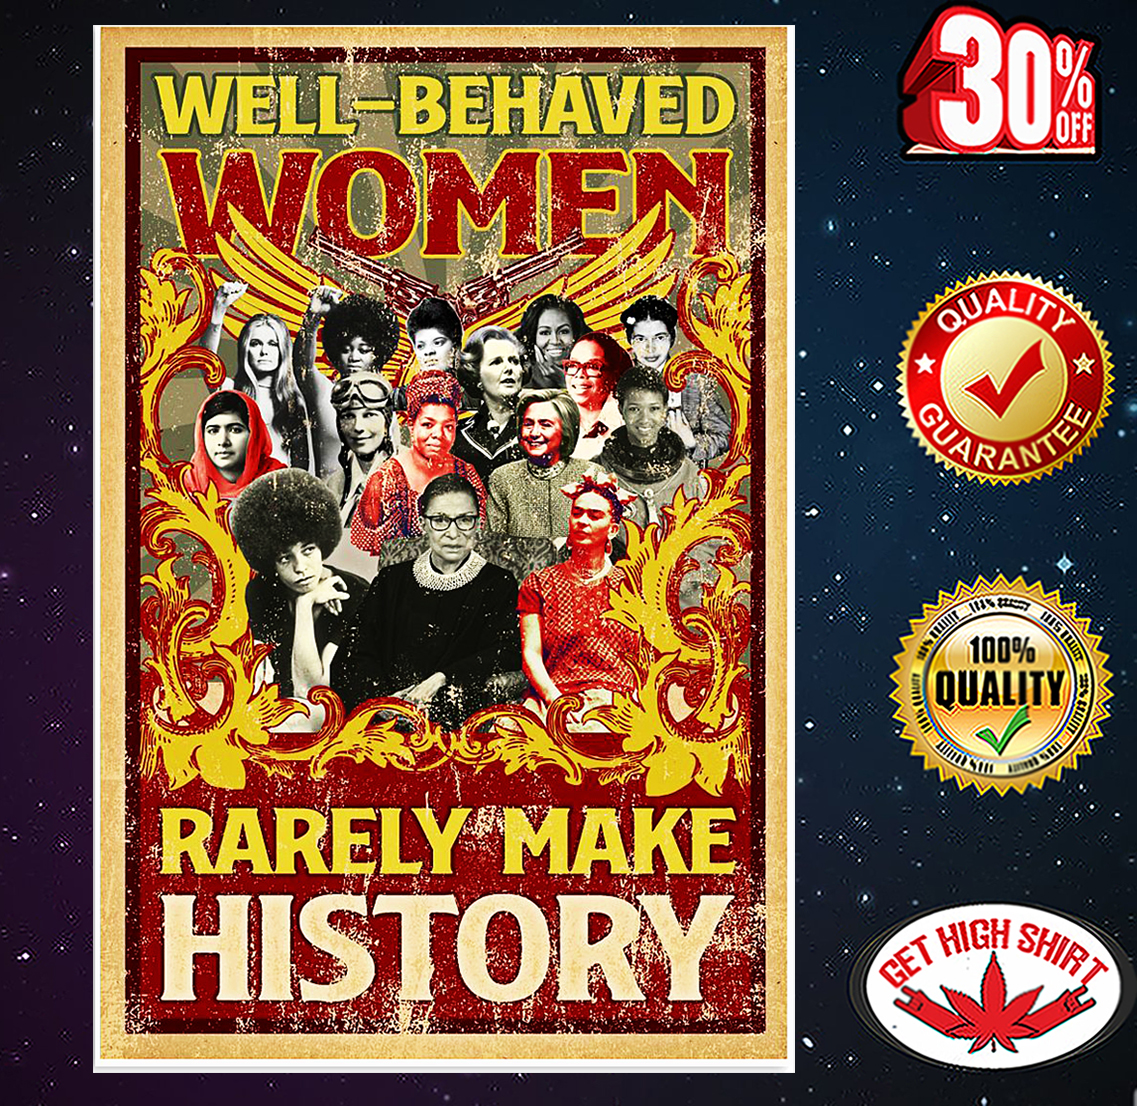 Well behaved women rarely make history poster 11x17